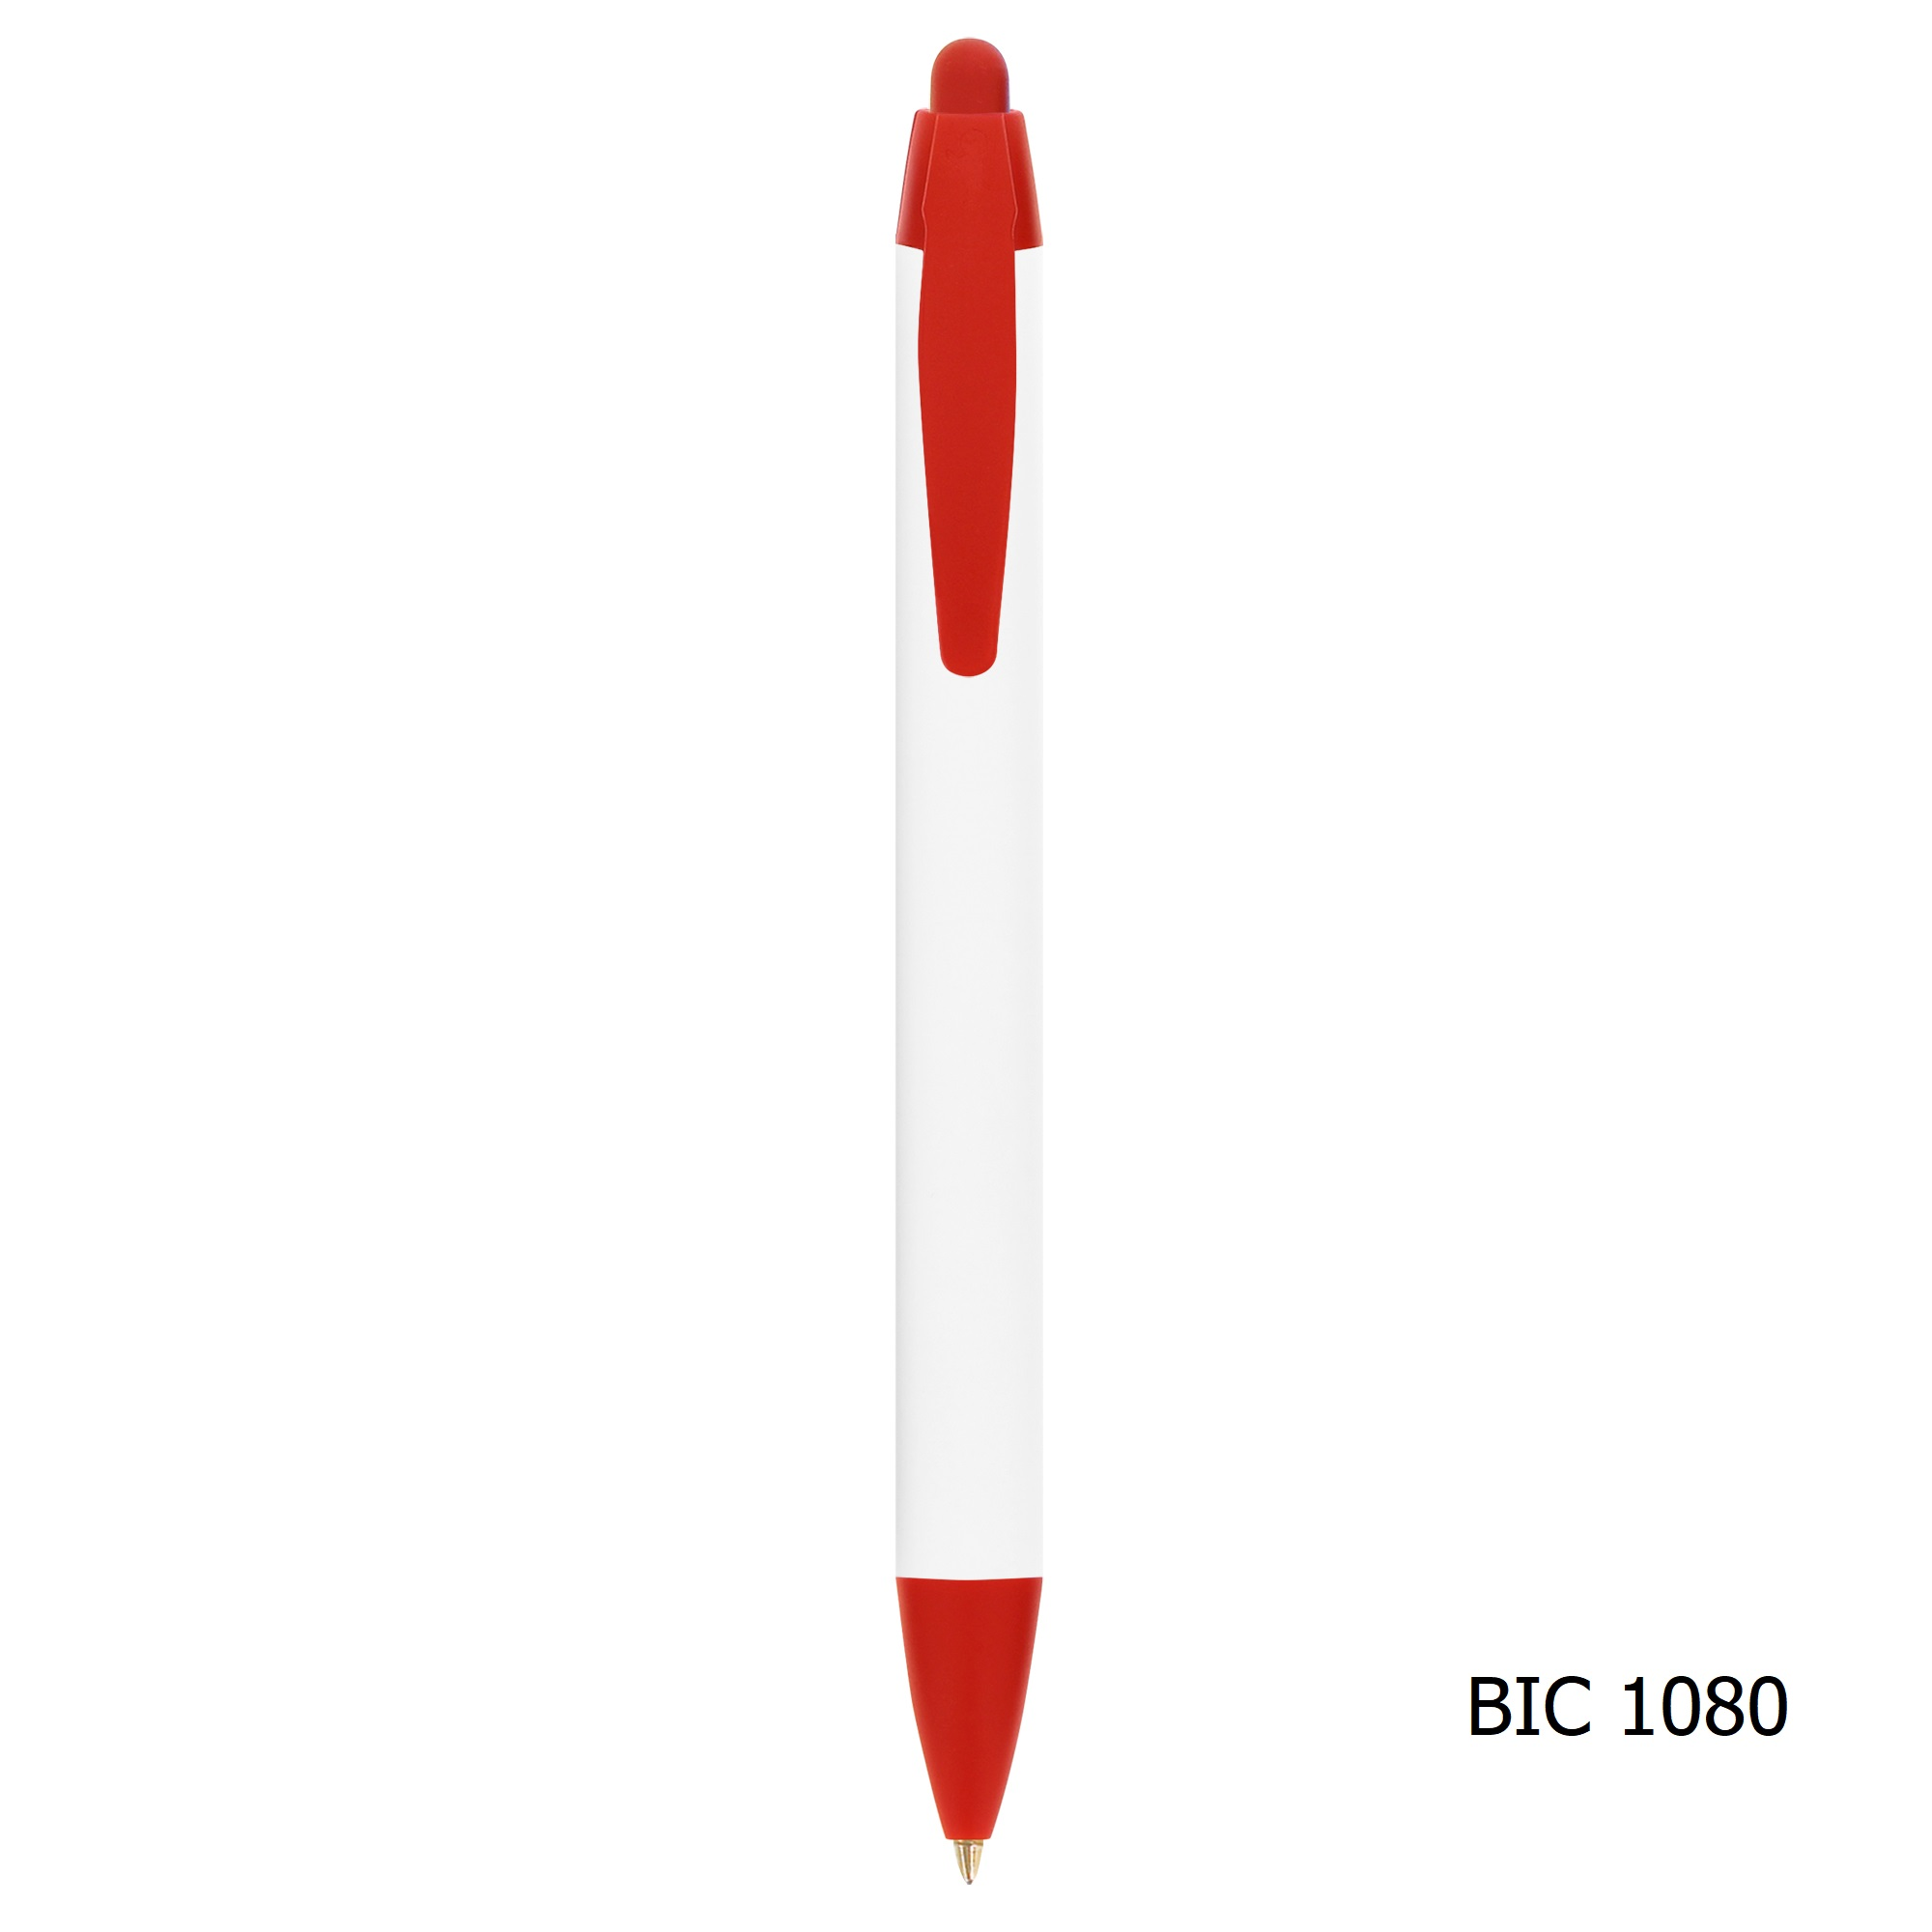 bic-wide-body-pen-1080_3